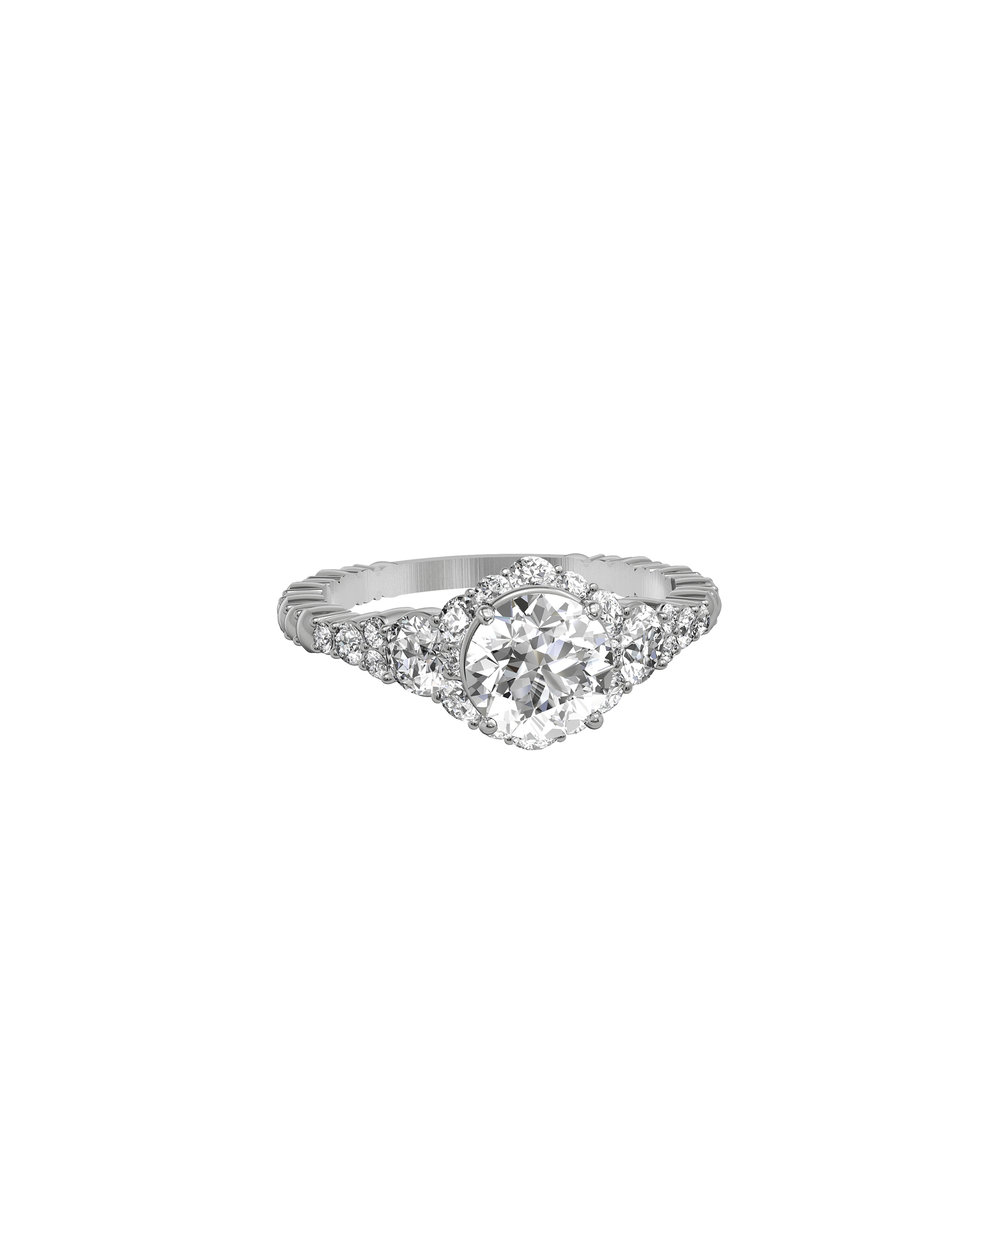 designer diamond bridal jewelry--8.jpg